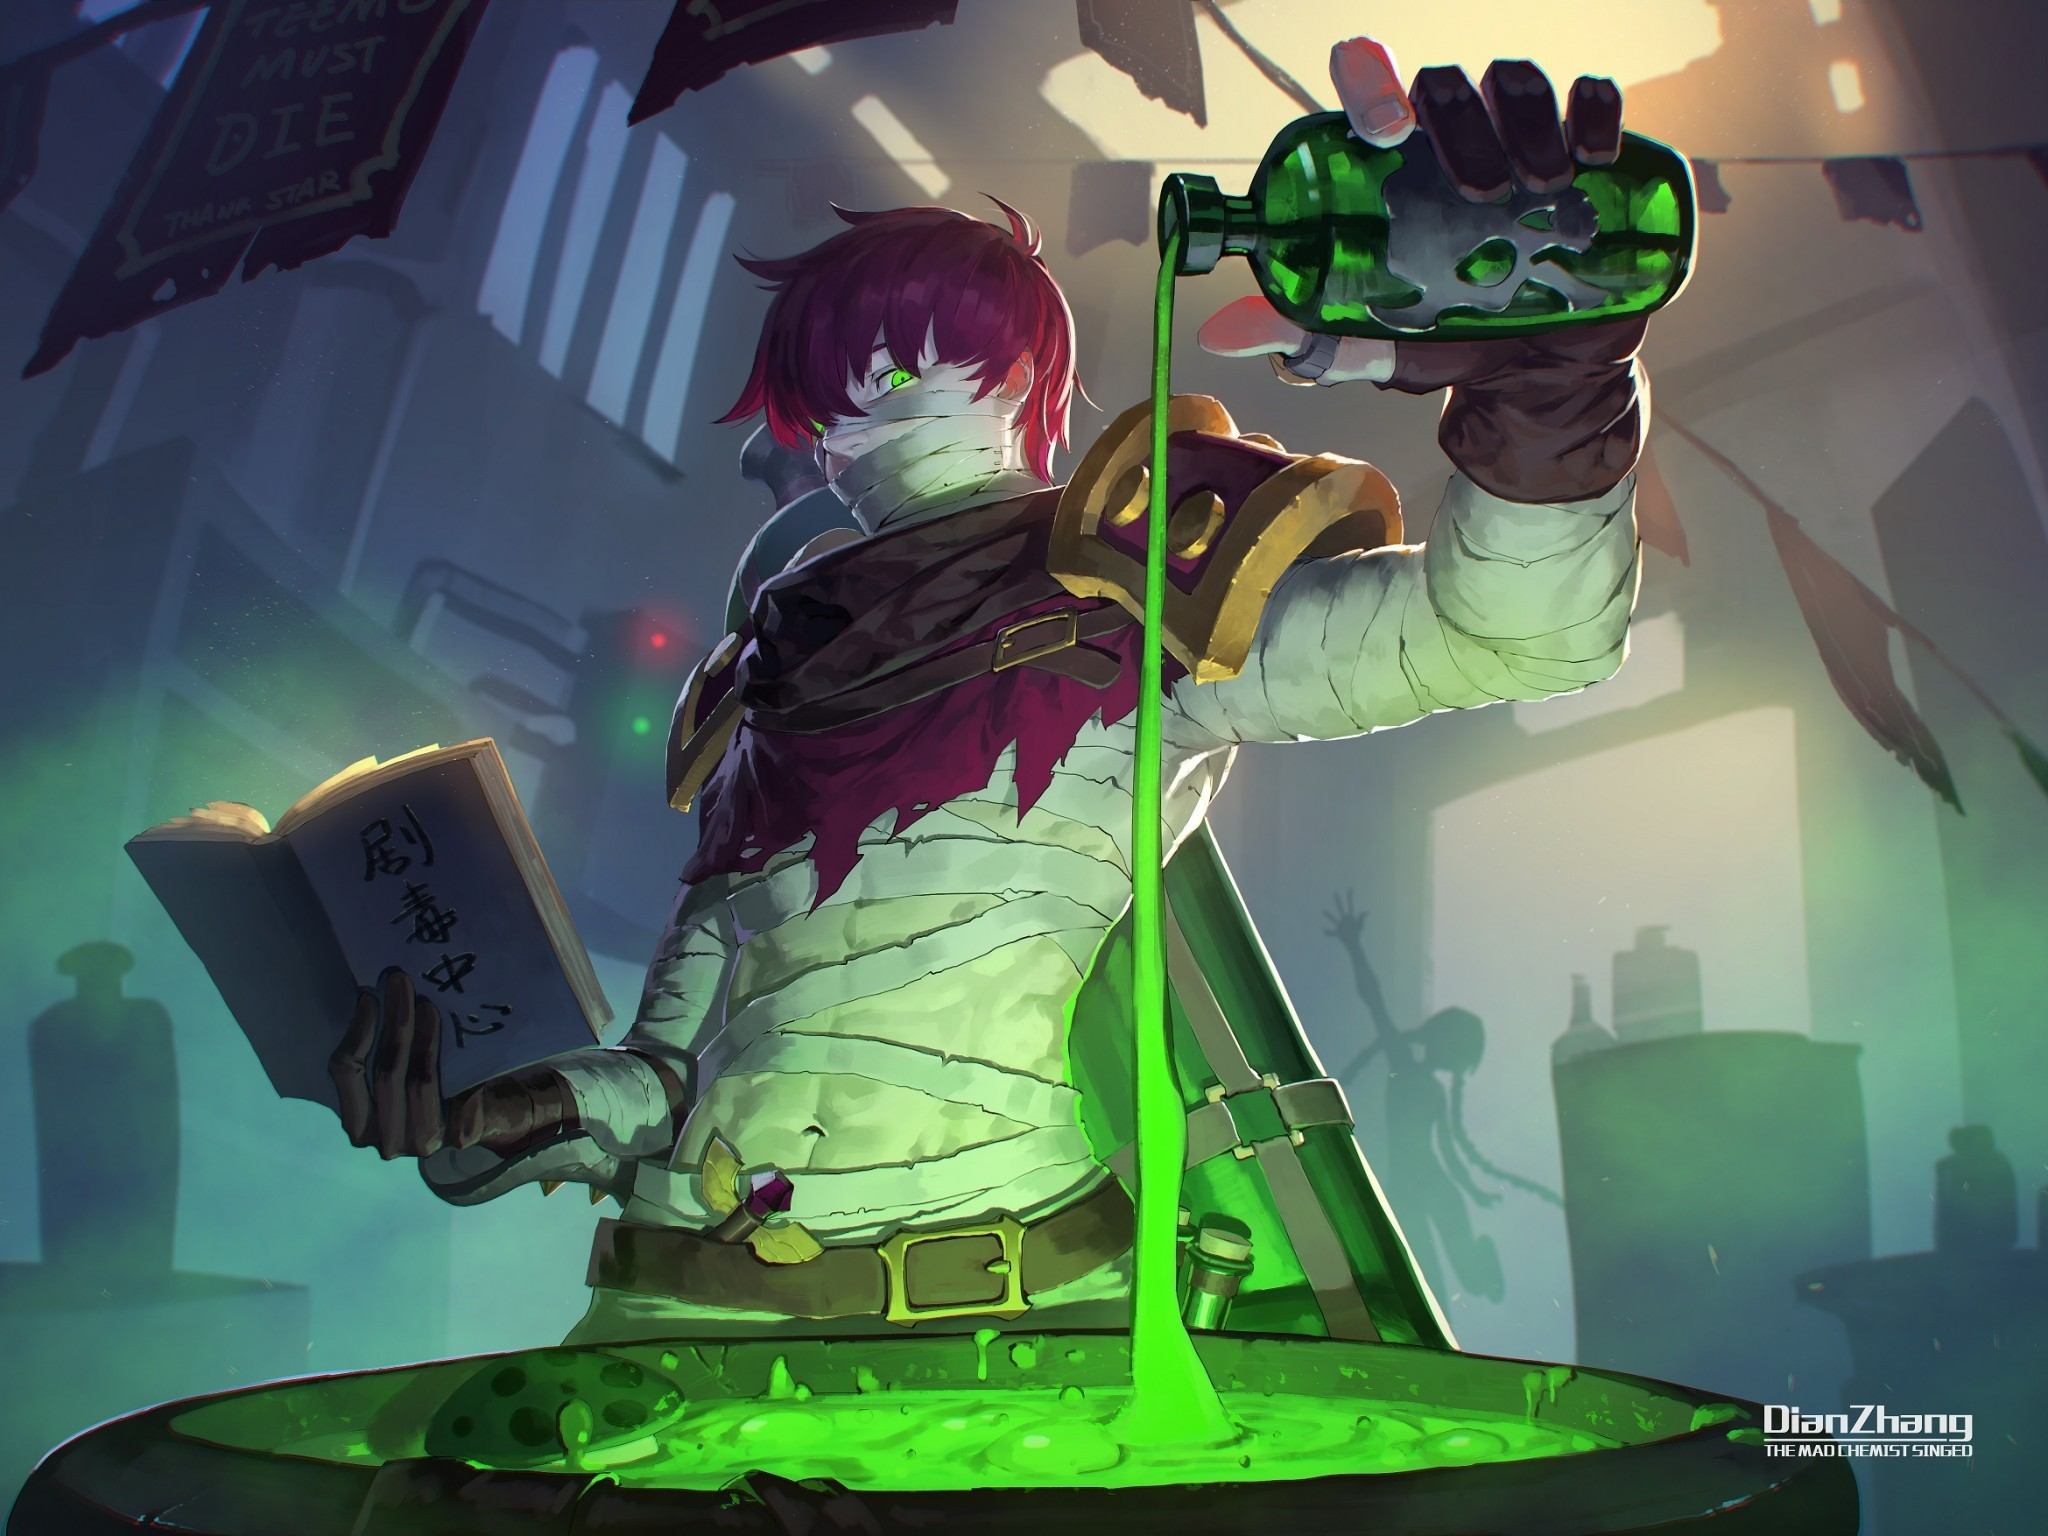 Download 2048x1536 League Of Legends Magic Poison Bandages 2048x1536